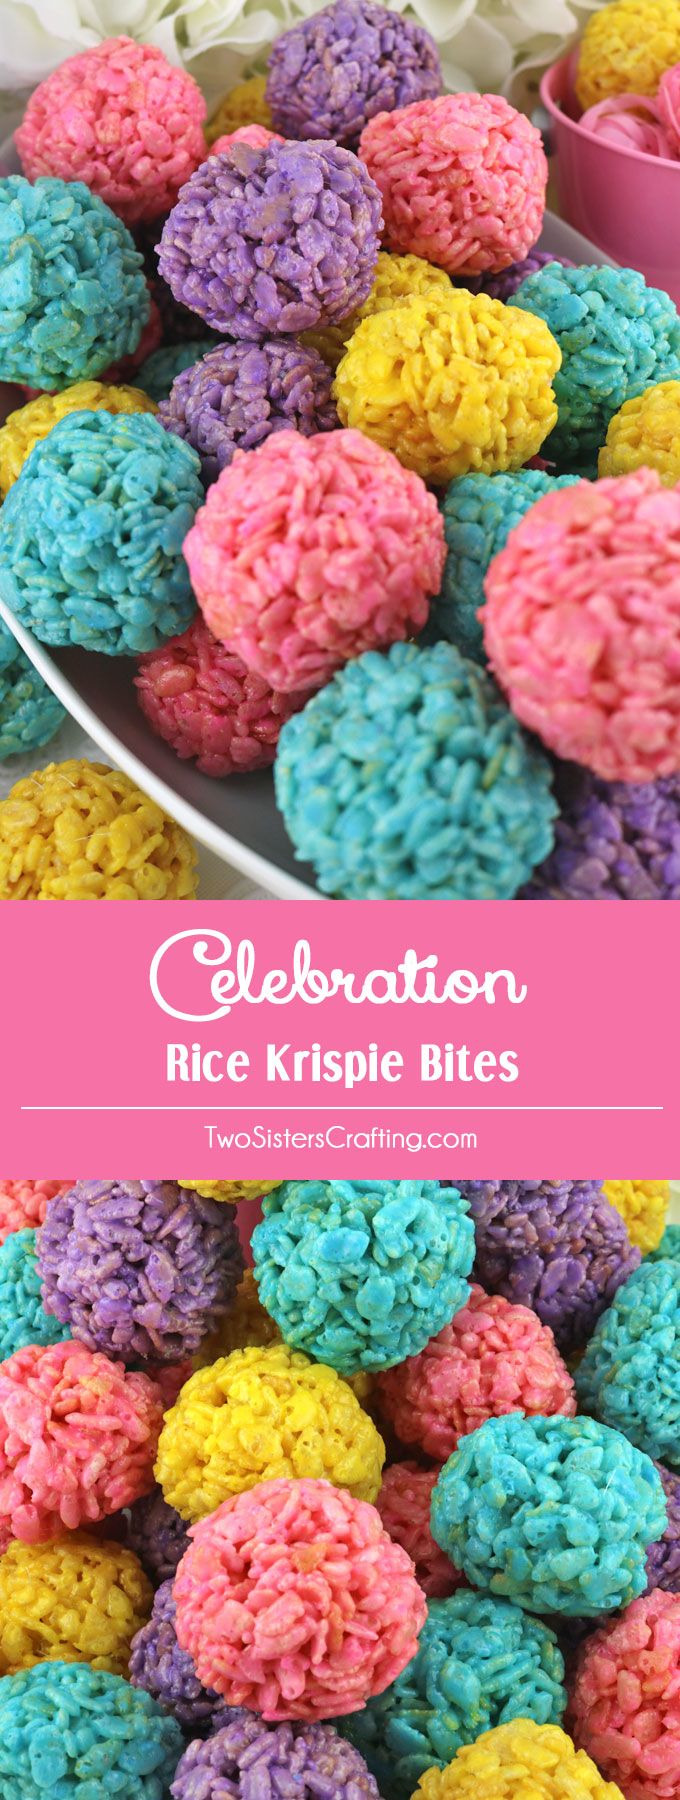 Celebration Rice Krispie Bites - Yummy, bite-sized balls of crunchy, marshmallow-y delight. This is a Easter dessert that is easy to make and even yummier to eat. These colorful and festive Easter Treats are sure to please your loved ones. They'd also be great for Mother's Day, a Spring Brunch or just a random Monday. Pin this fun Easter snack for later and follow us for more fun Easter Food Ideas.